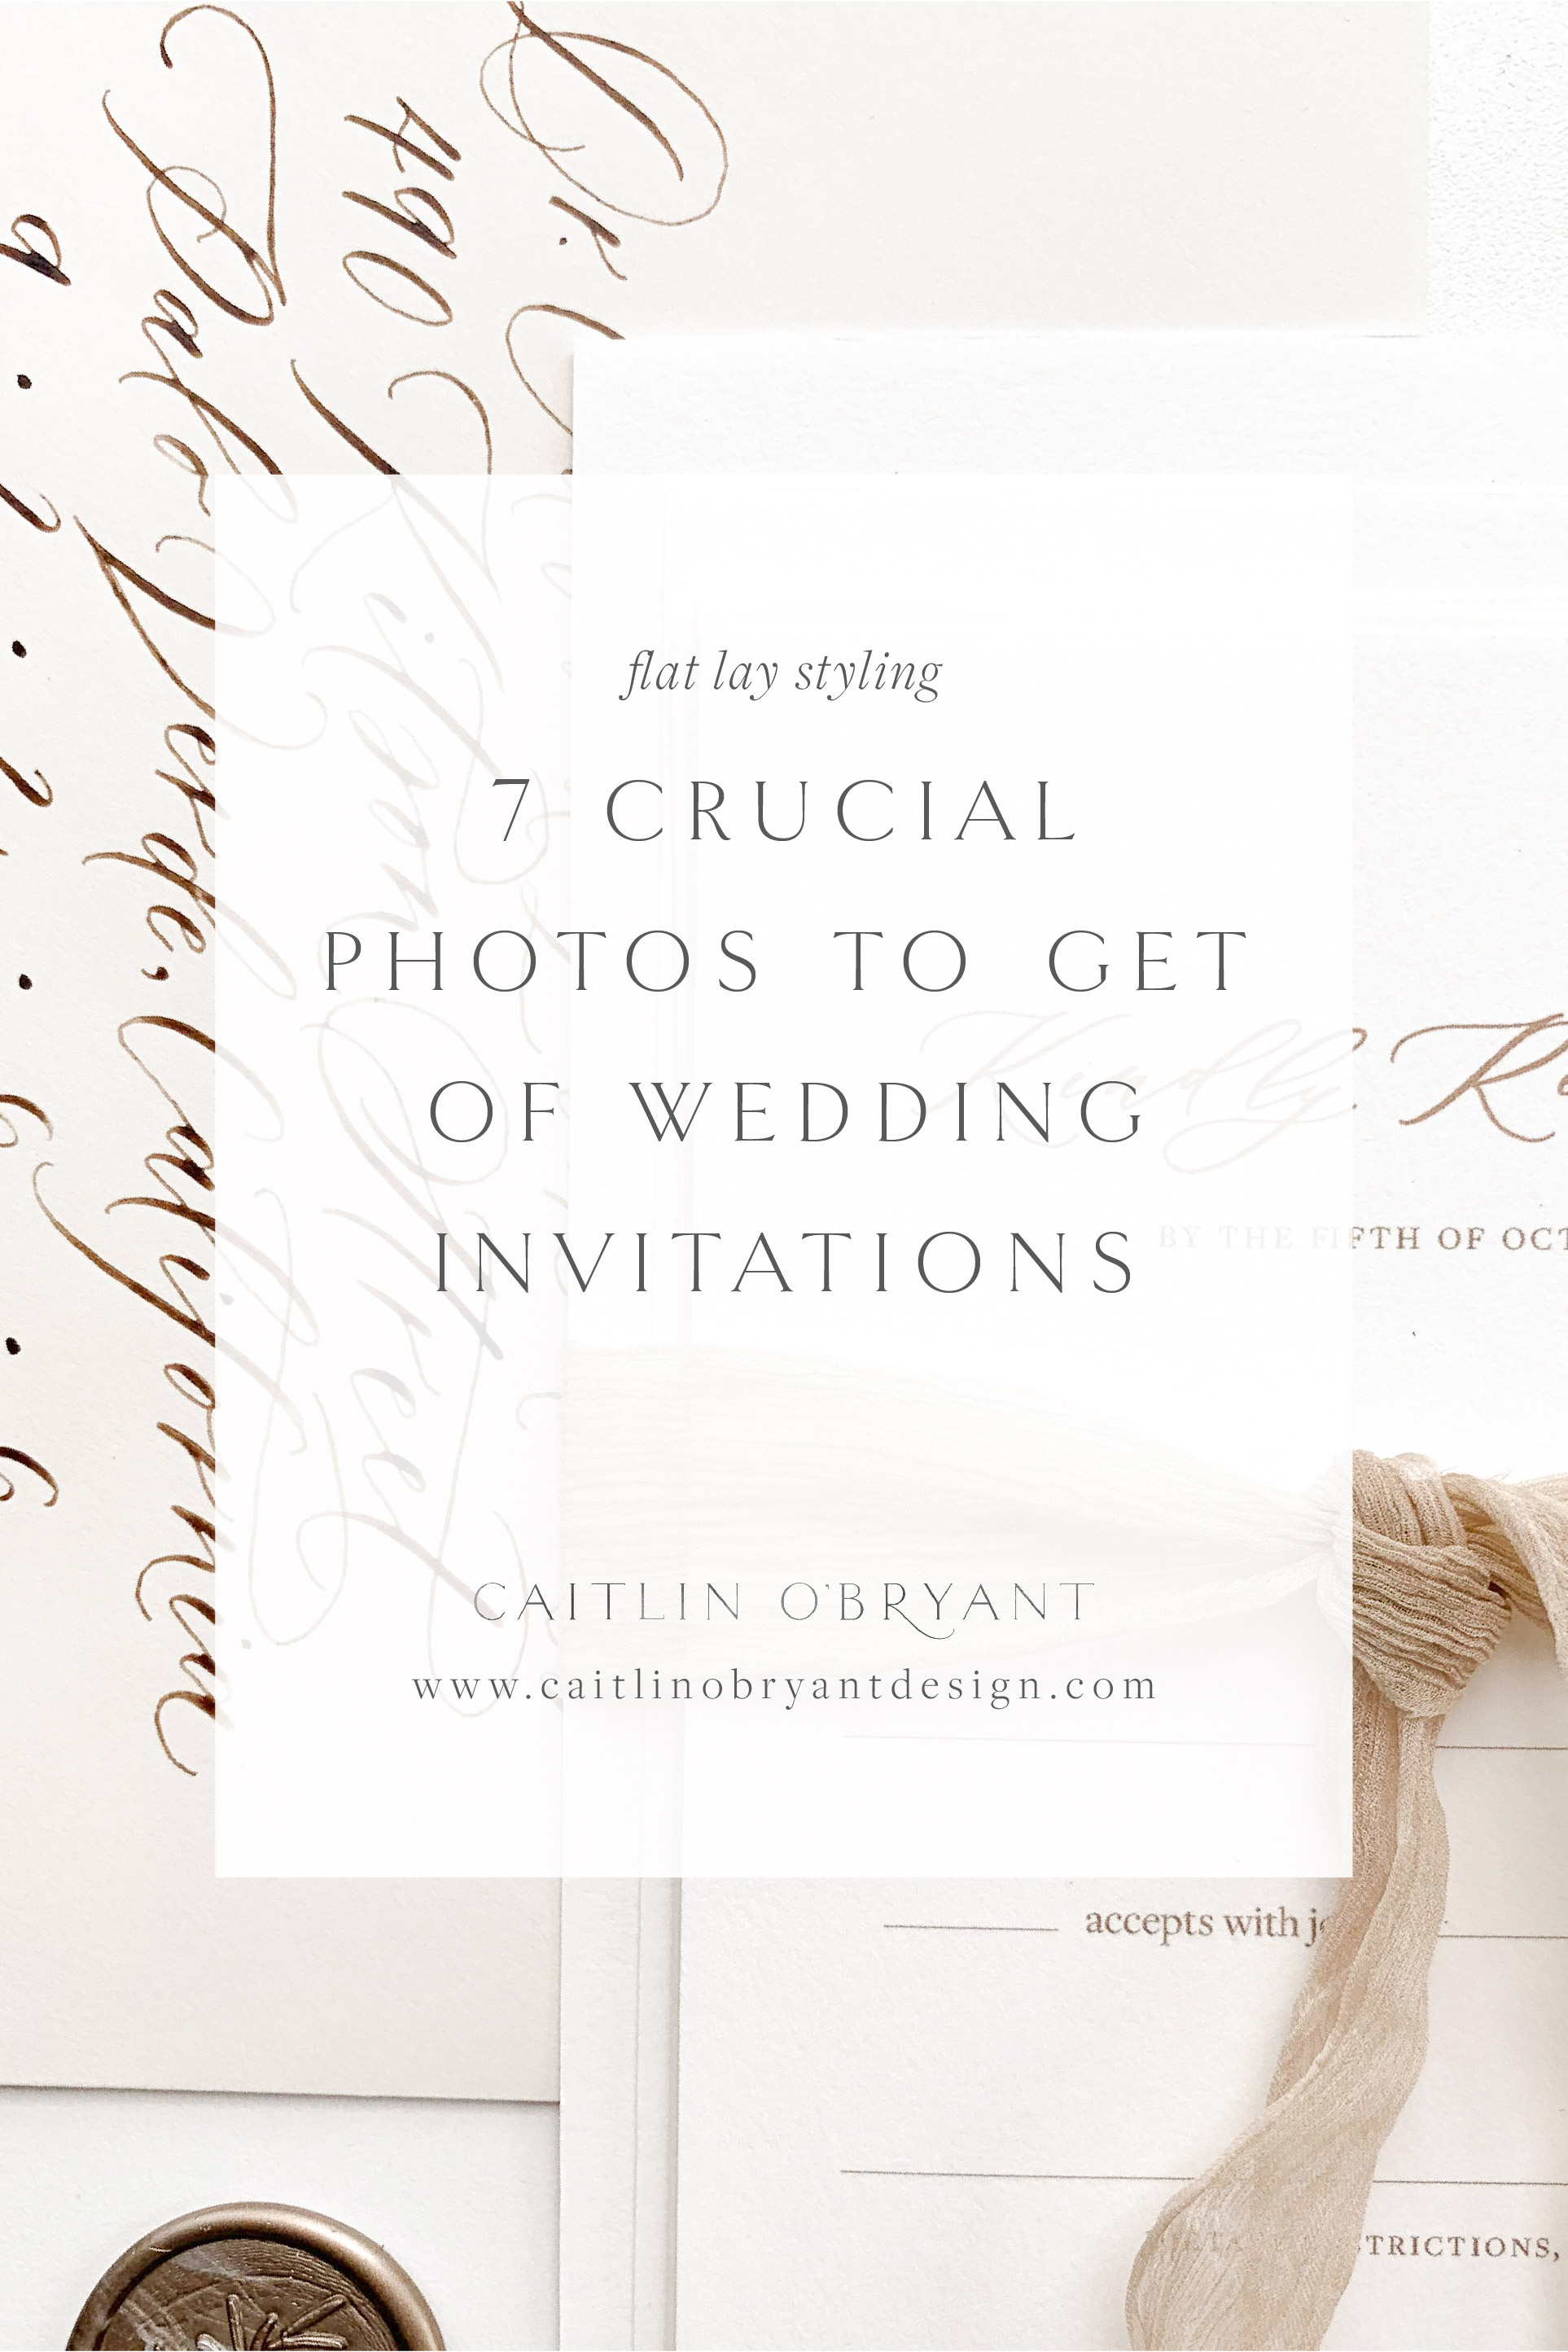 7 Crucial Shots to Get When Photographing Wedding Stationery. A comprehensive, must-have stationery shot list for wedding photographers.